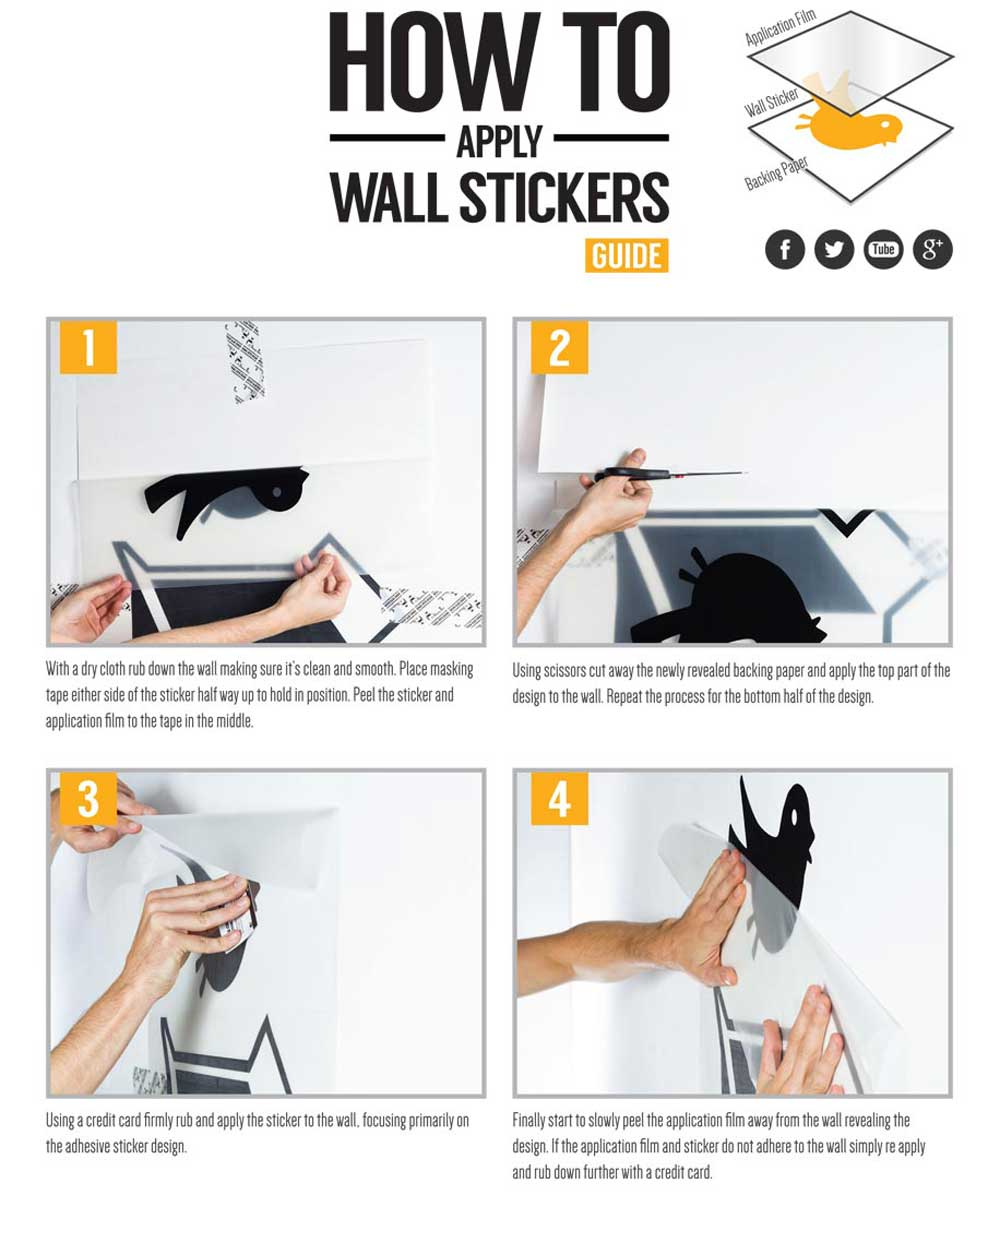 How To Install Wall Decals Wall Stickers Application Instructions - How do you put up vinyl wall decals